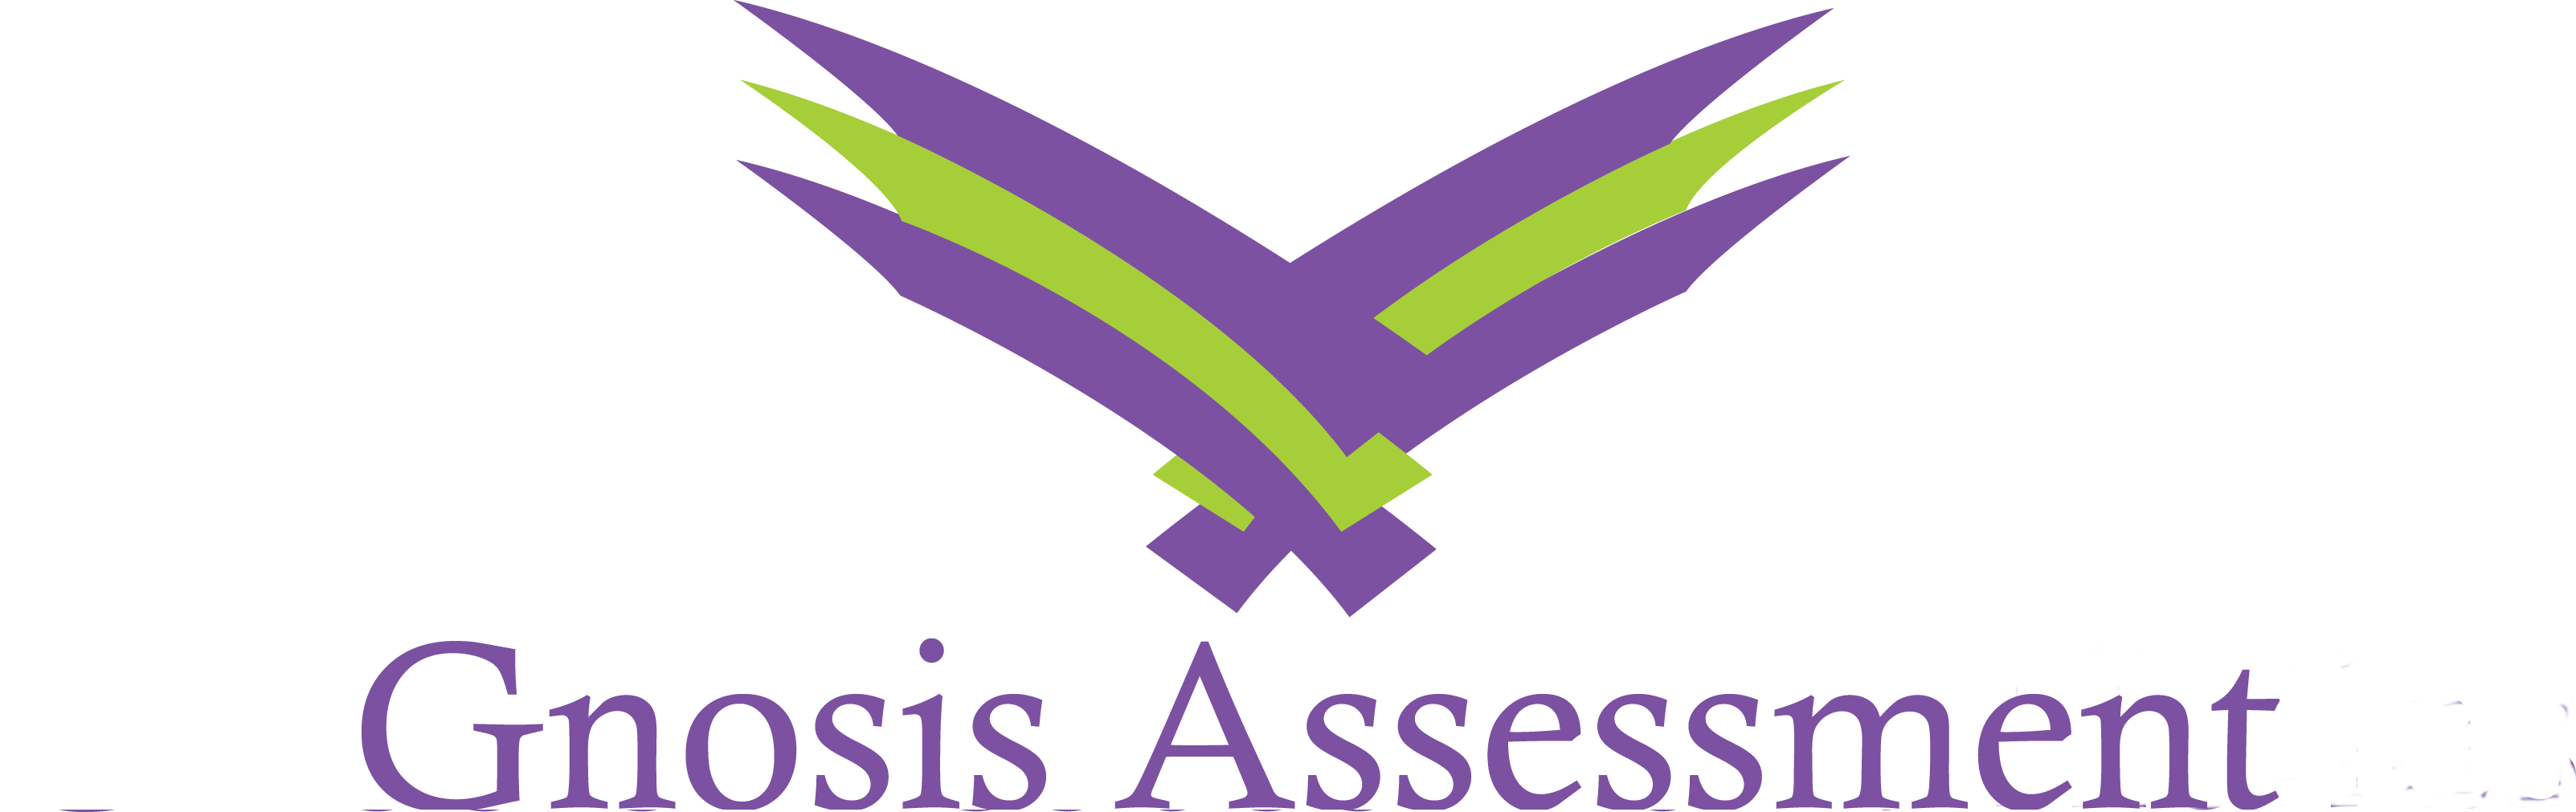 Gnosis Assessment Logo